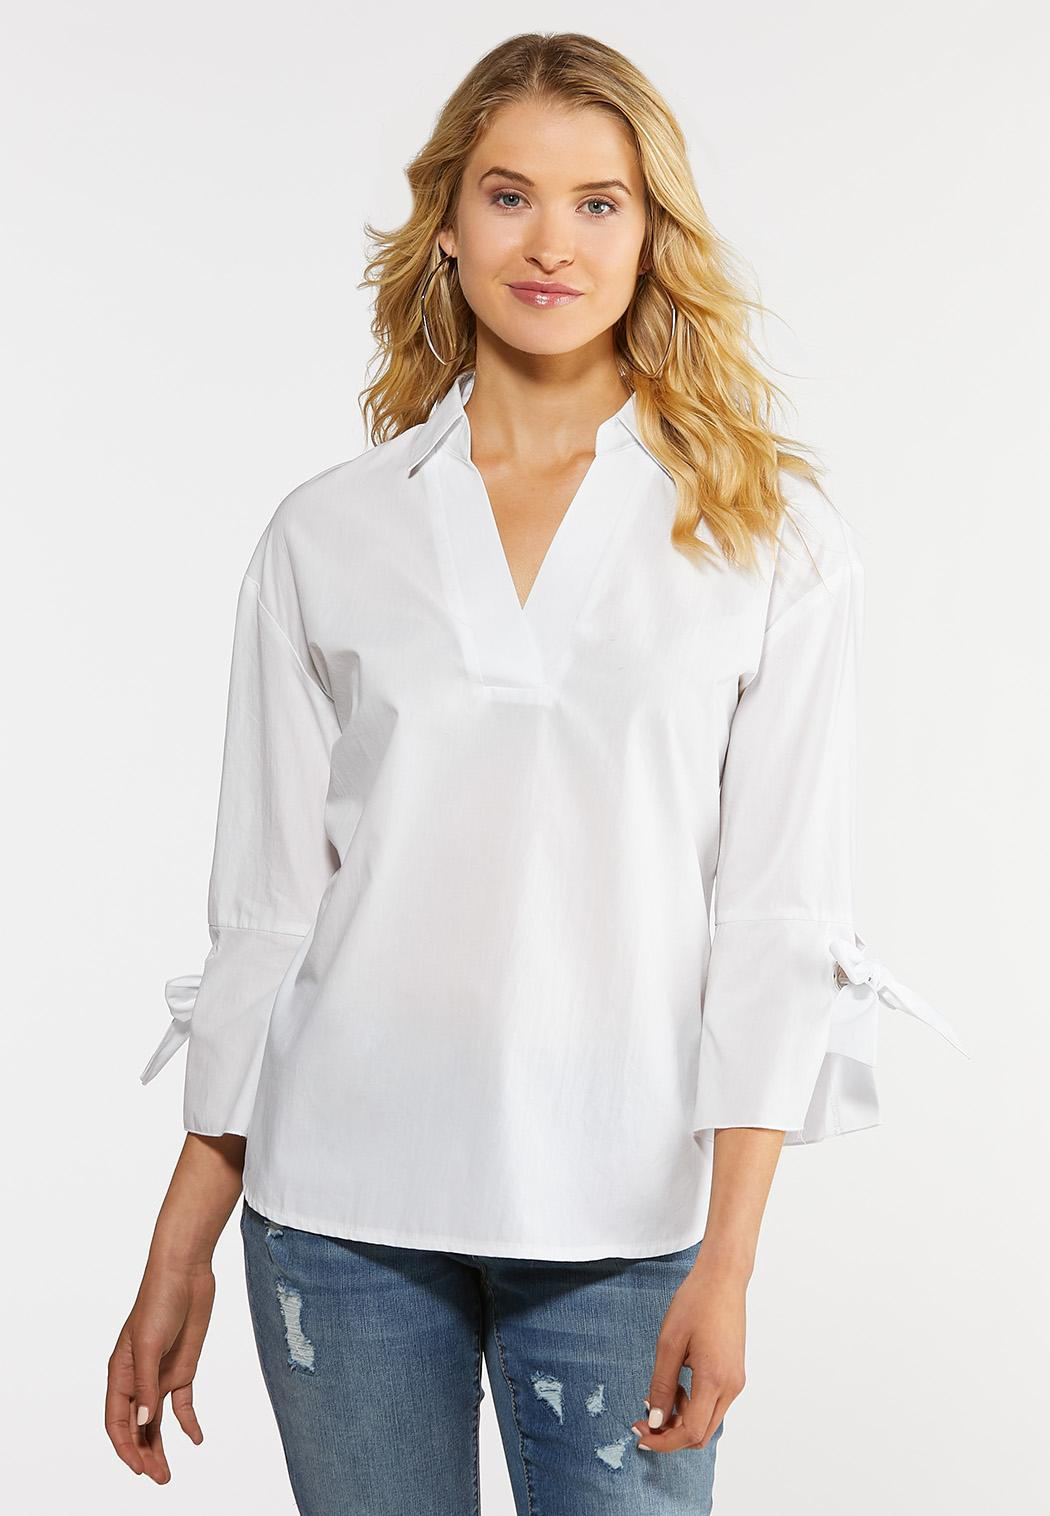 Plus Size White Bell Sleeve Shirt Shirts & Amp ; Blouses Cato Fashions